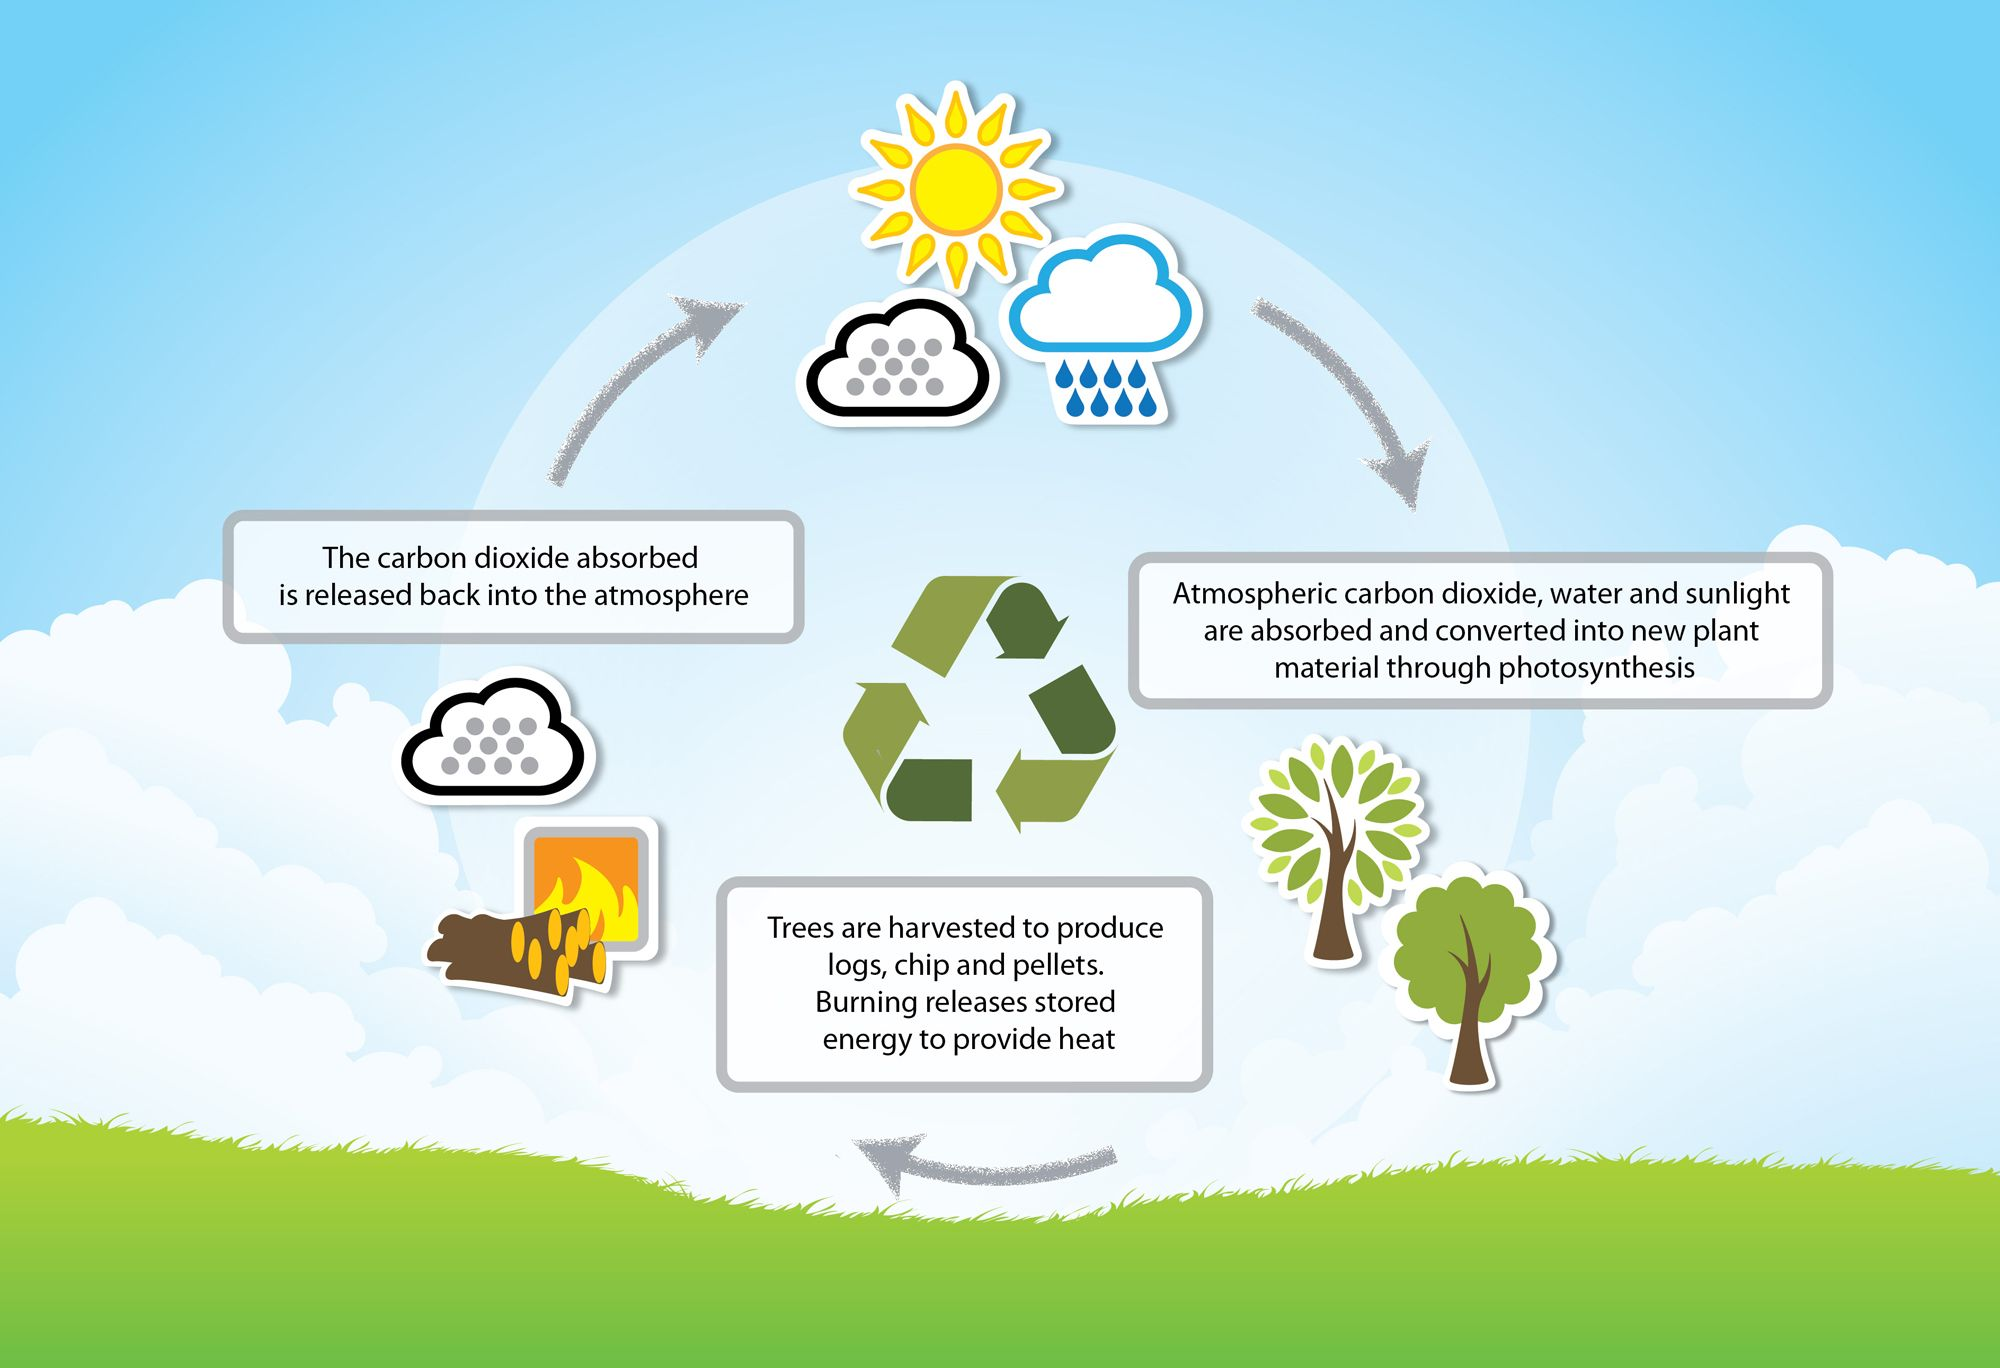 Biomass a renewable energy source or a danger to the environment biomass a renewable energy source or a danger to the environment pooptronica Choice Image